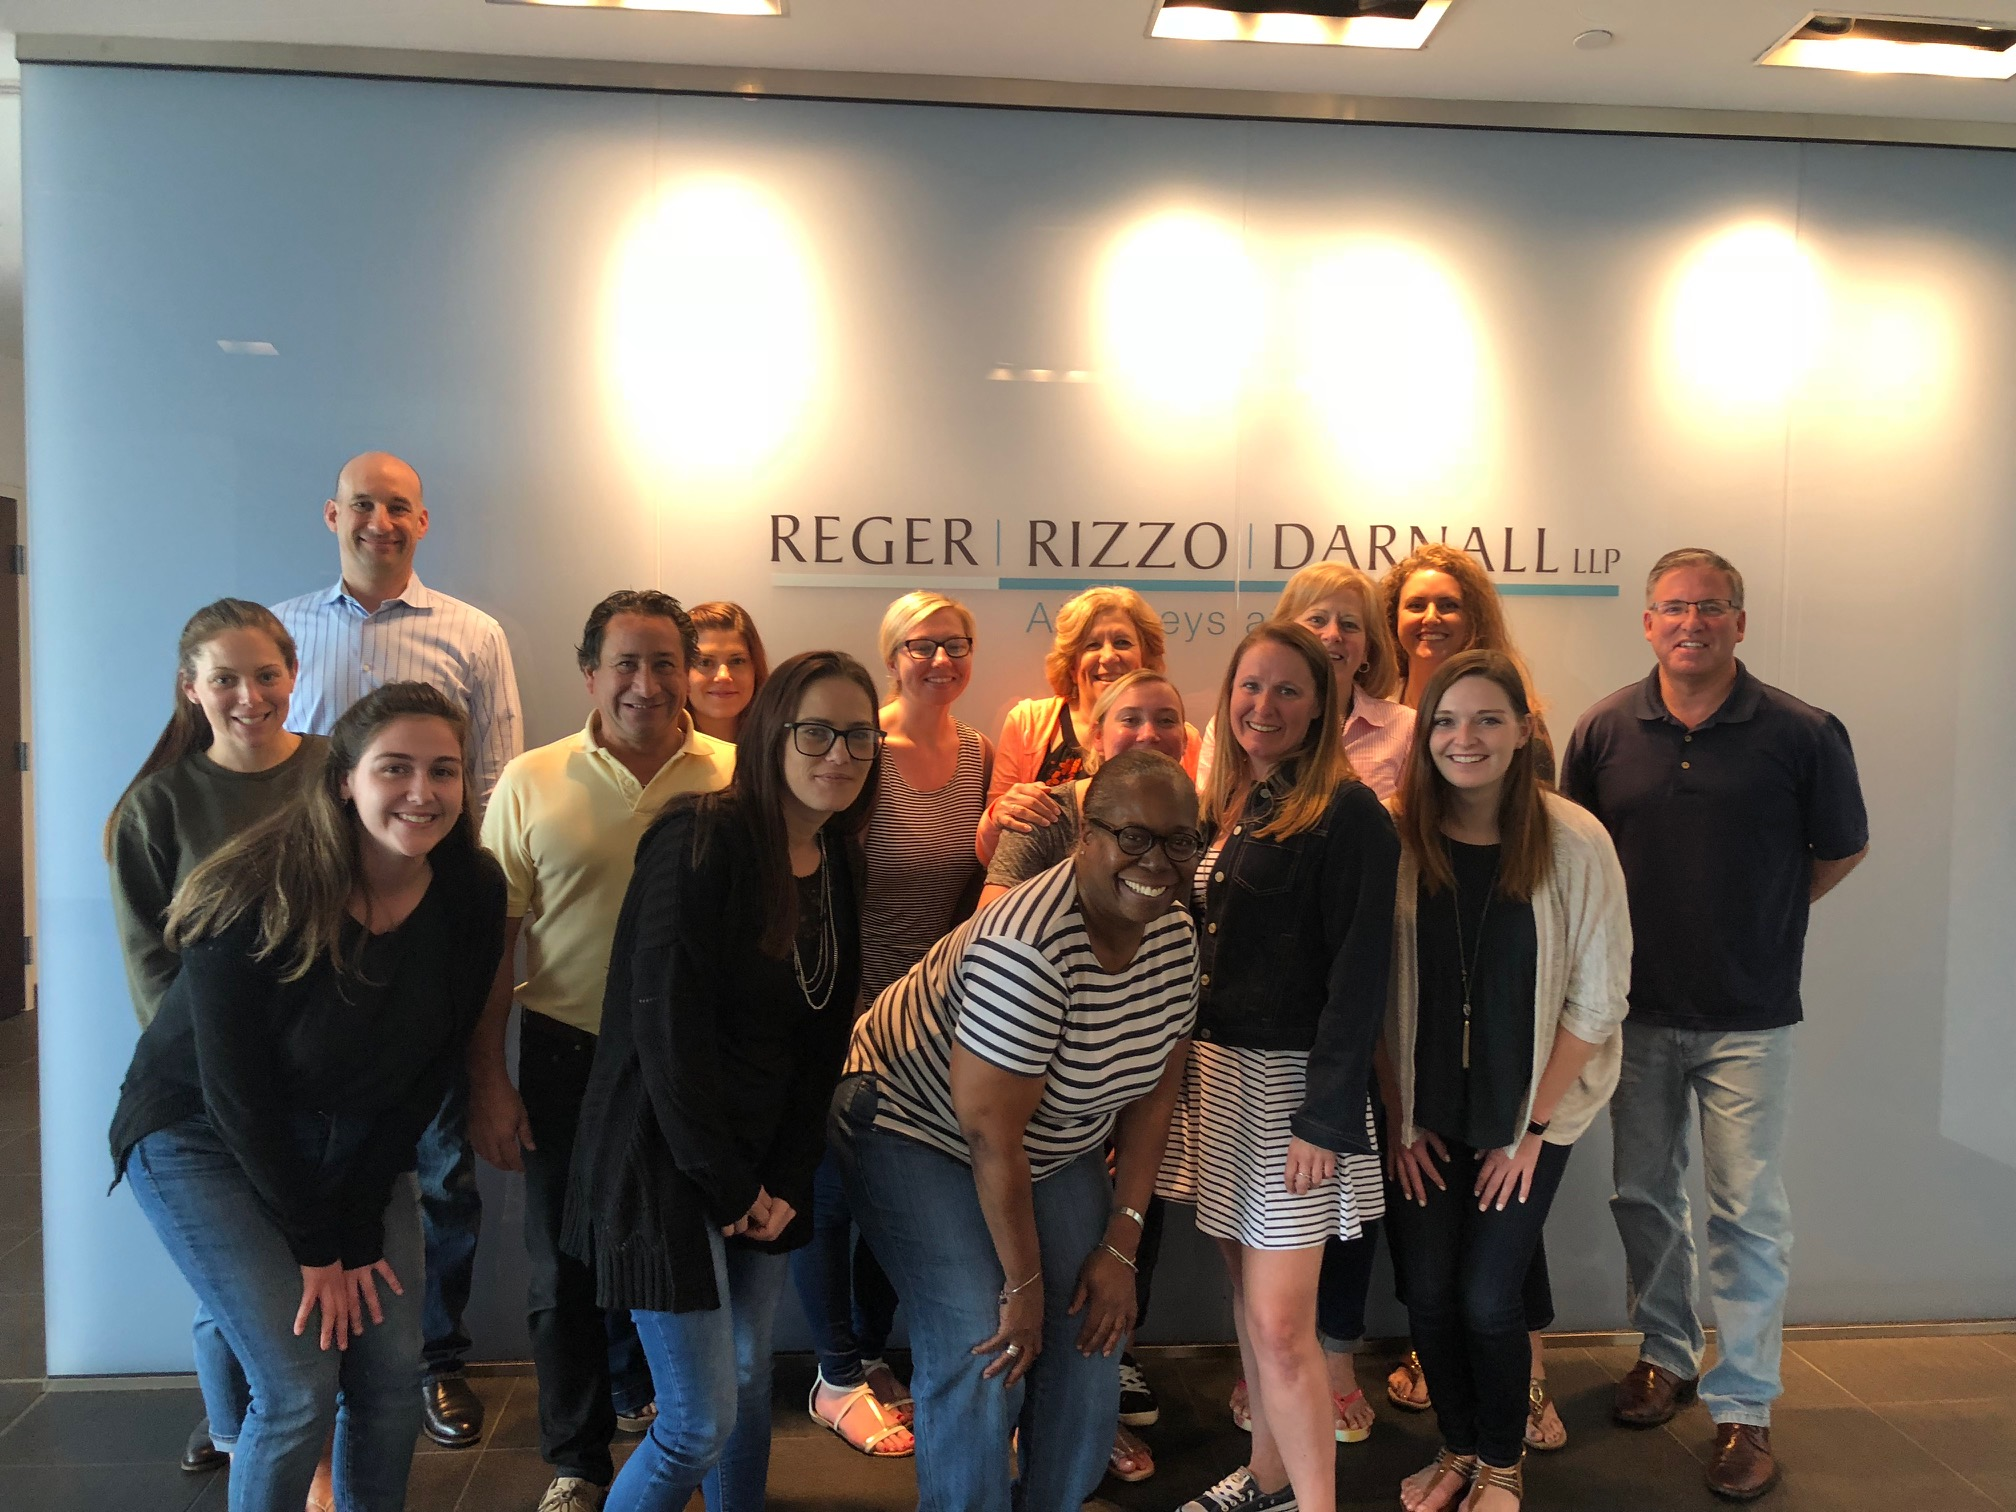 Reger Rizzo & Darnall LLP Partners with The Philadelphia Bar Foundation in Jeans for Justice Campaign